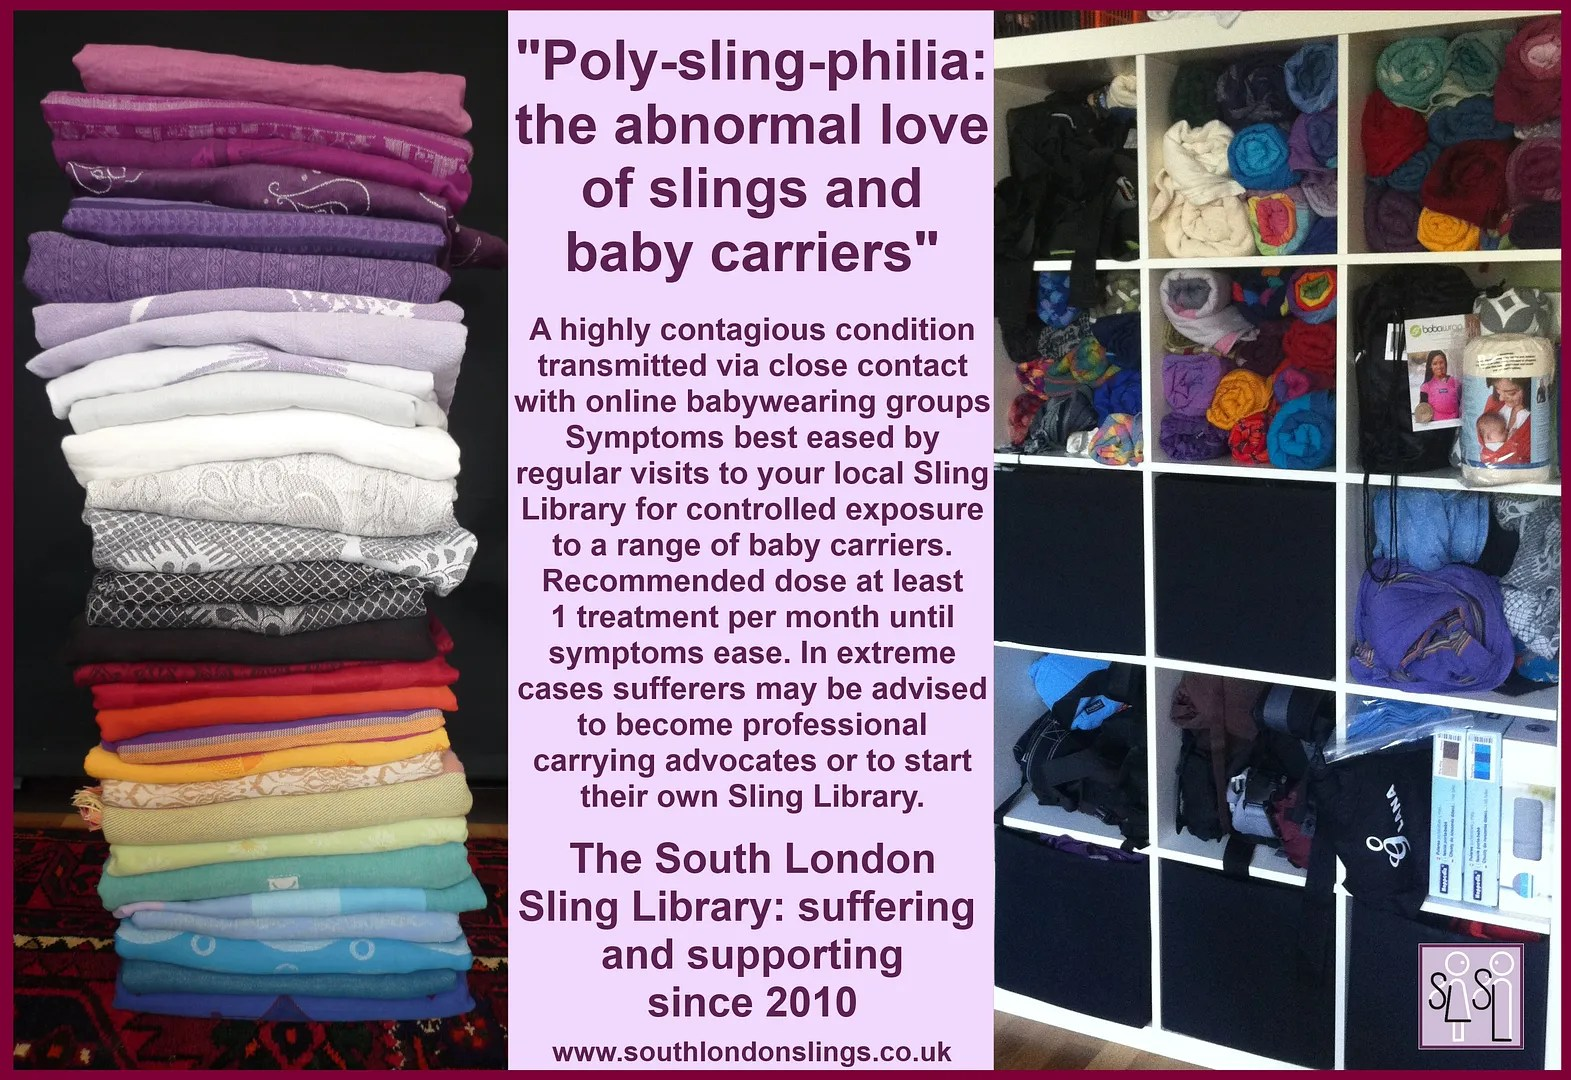 Poly-sling-philia picture